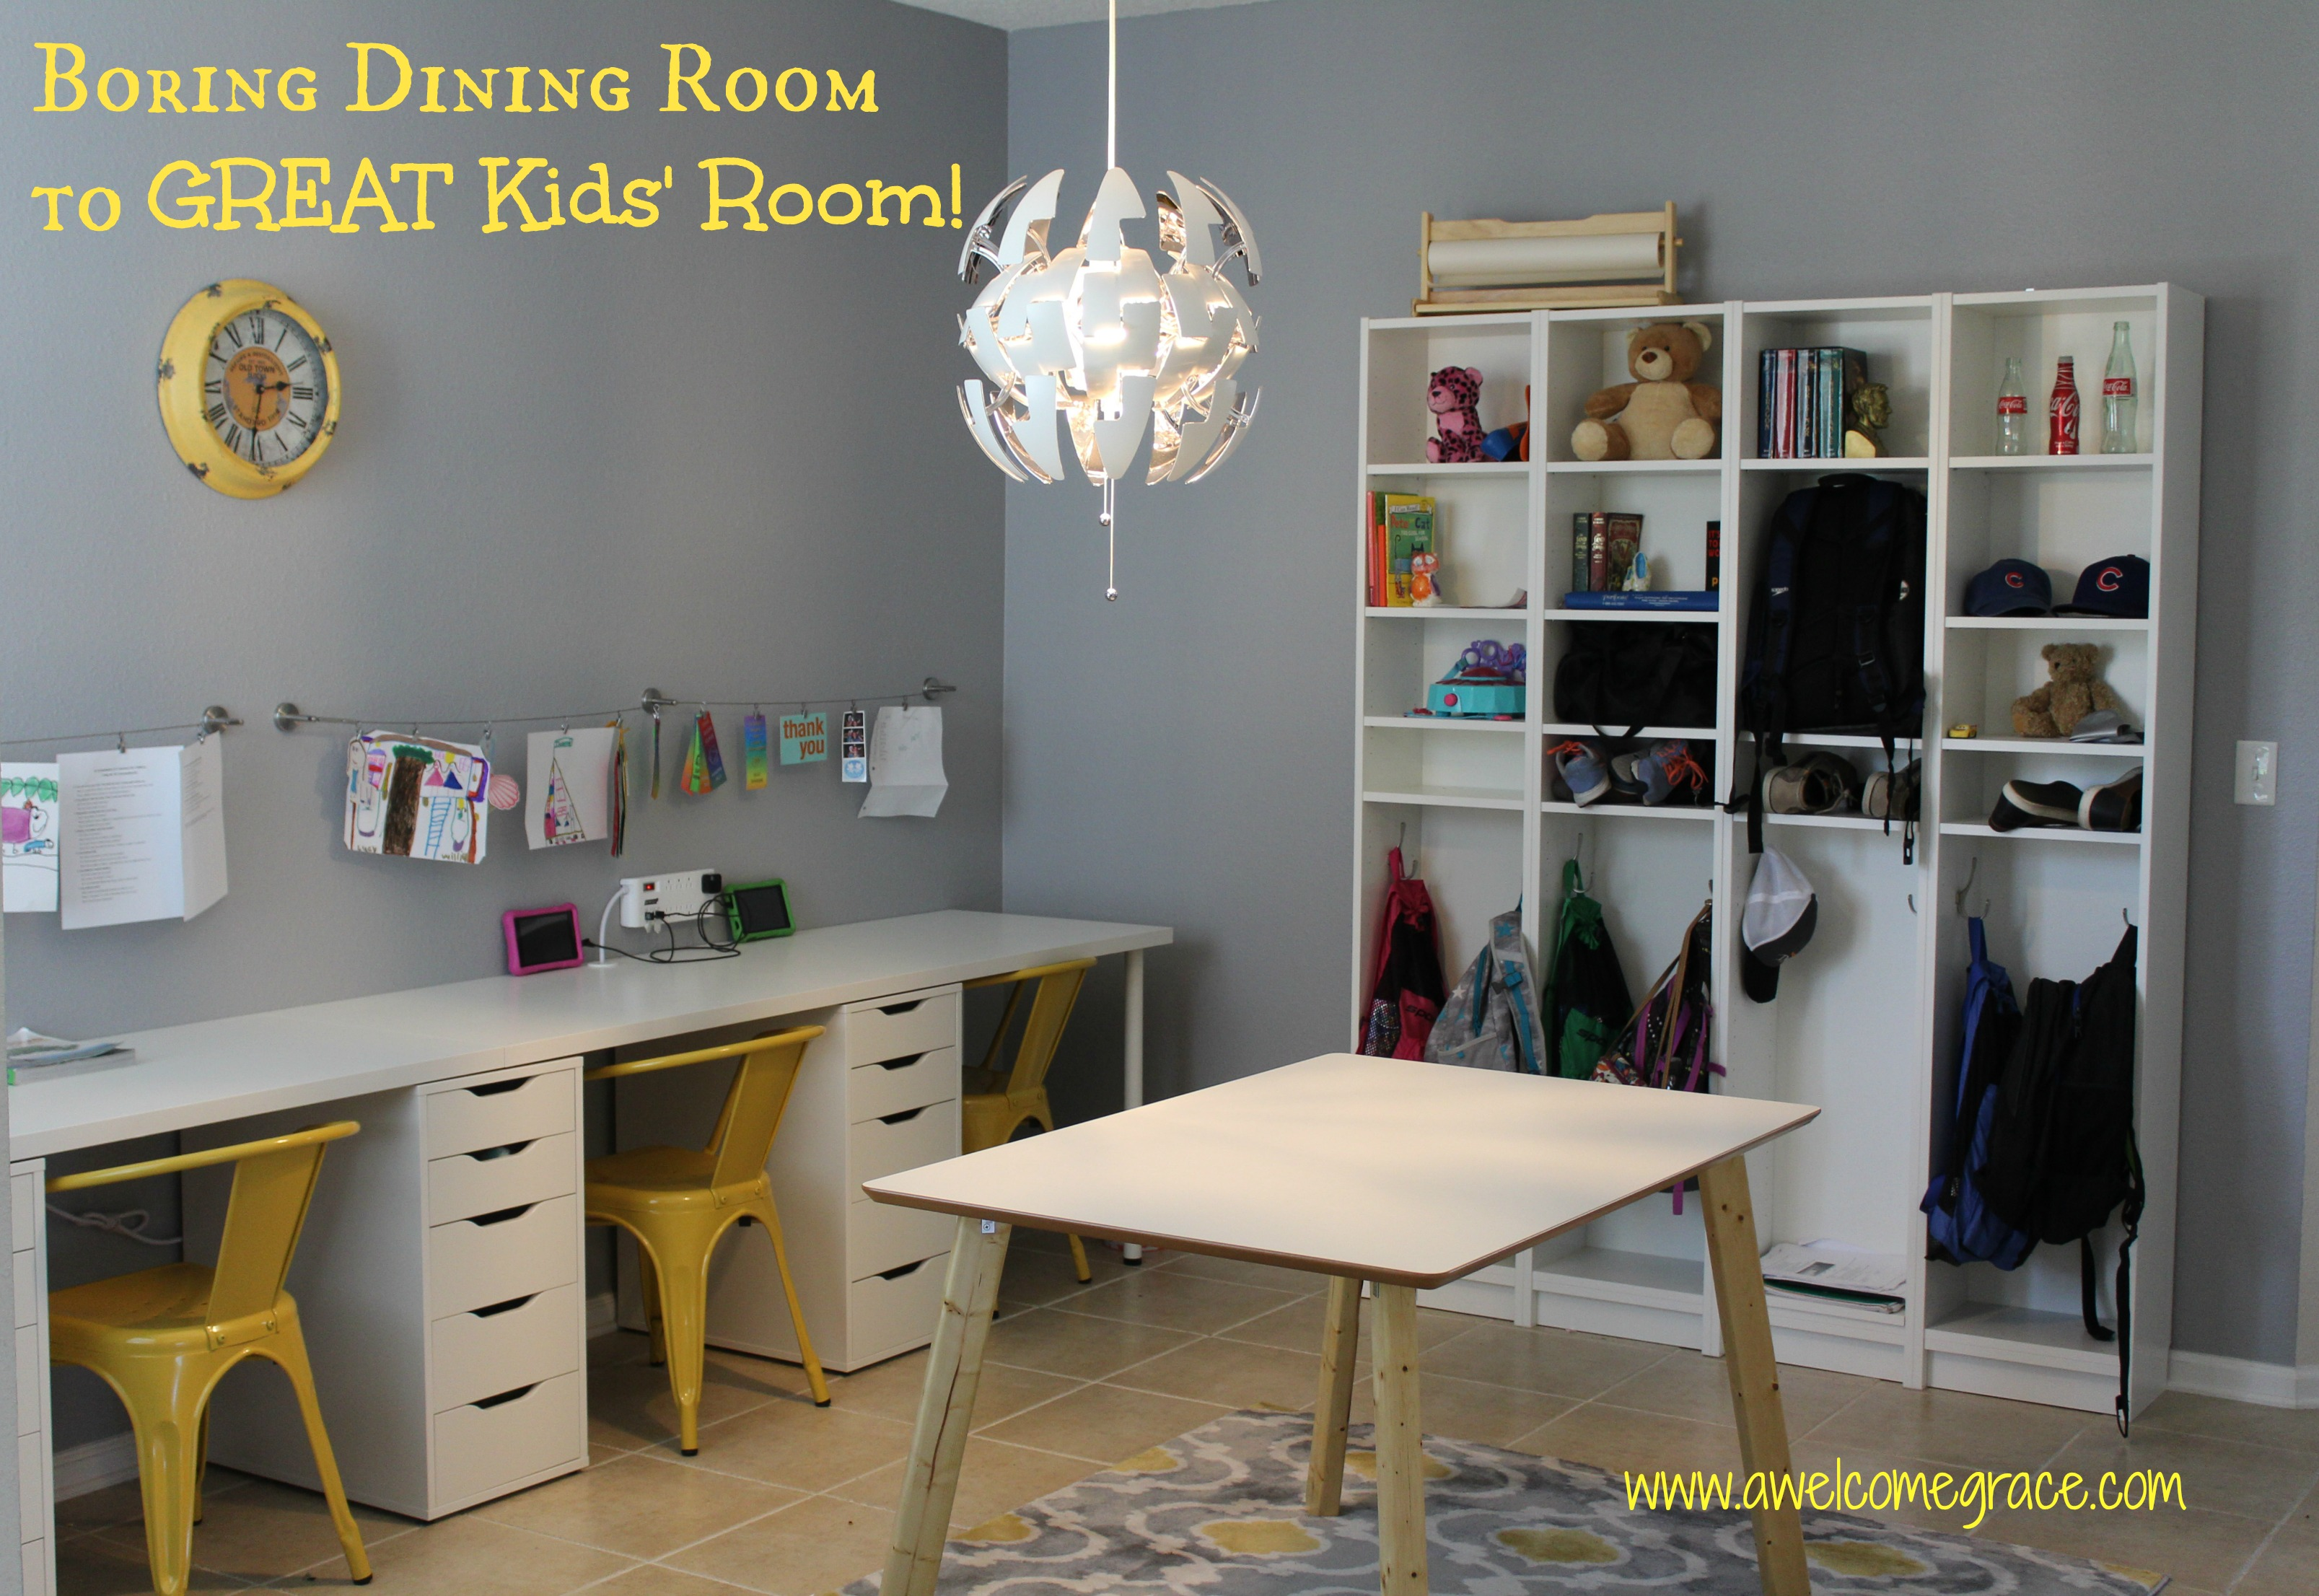 Boring Dining Room to GREAT Kids' Room!